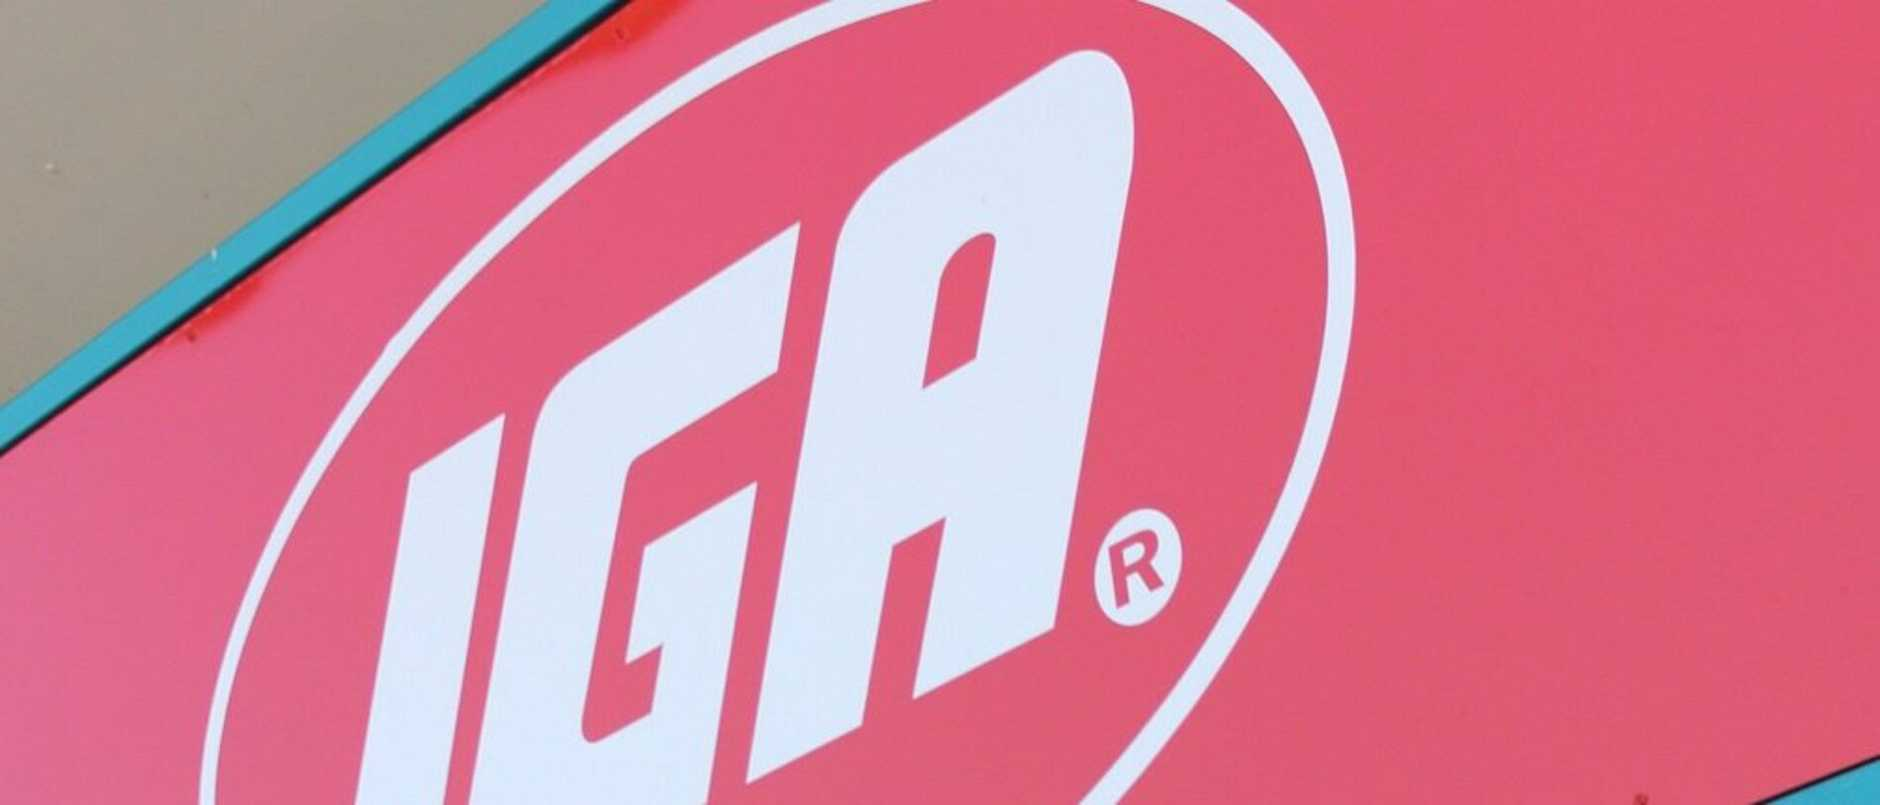 The doors of another Queensland IGA supermarket have been locked after its Carl's Jr and Cinnabon-linked owner failed to pay the landlord.